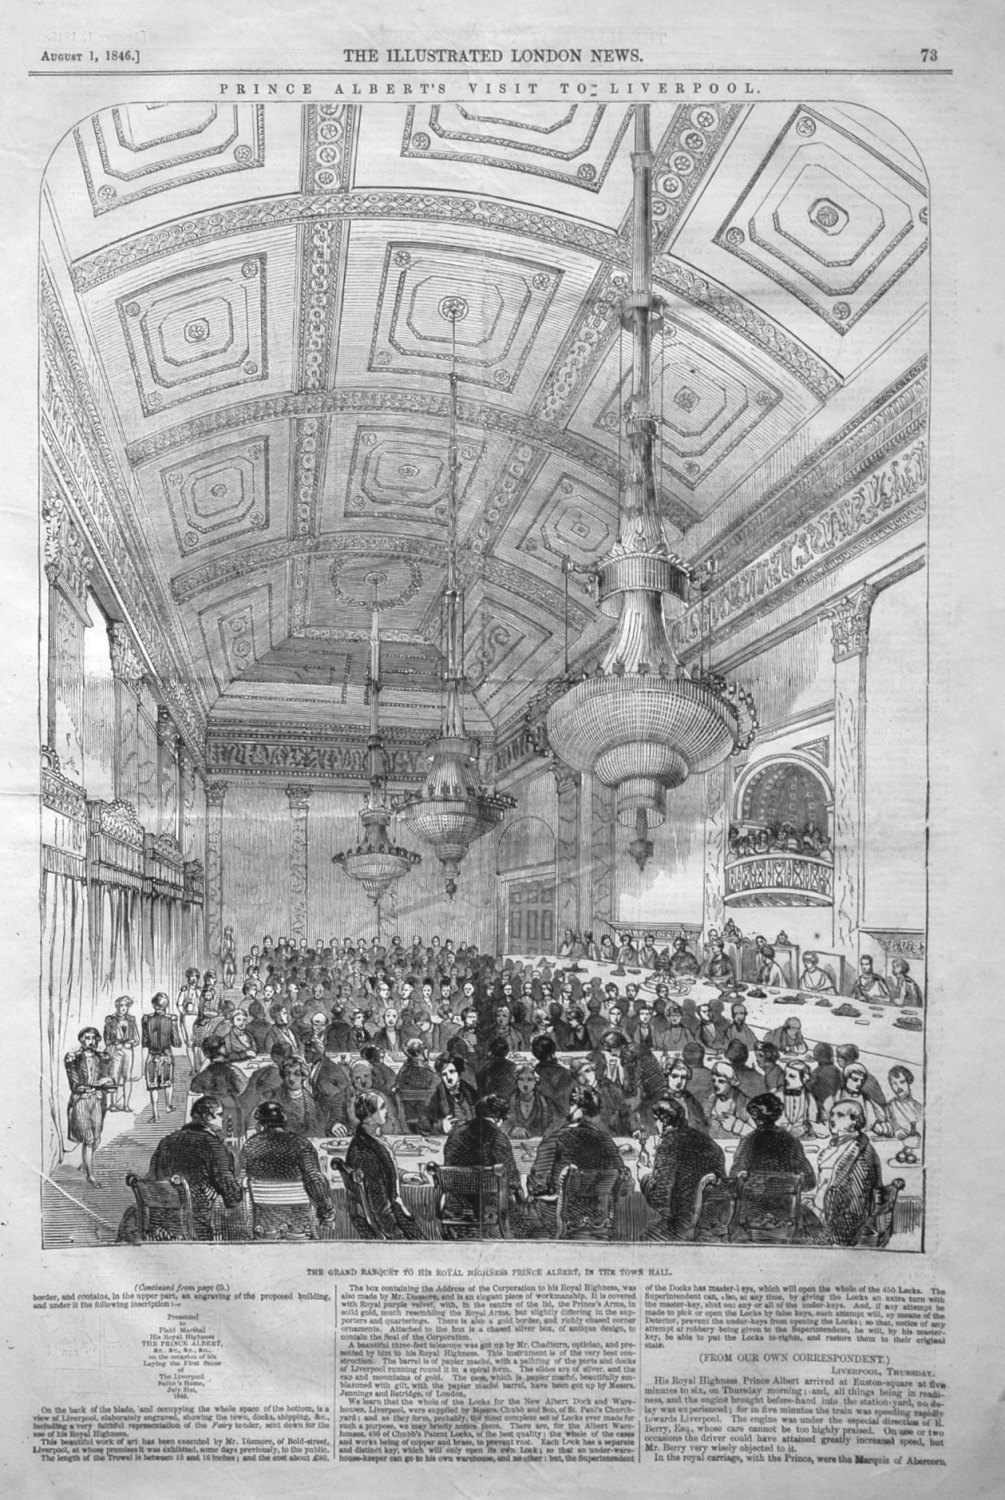 The Grand Banquet to His Royal Highness Prince Albert, in the Town Hall. 18